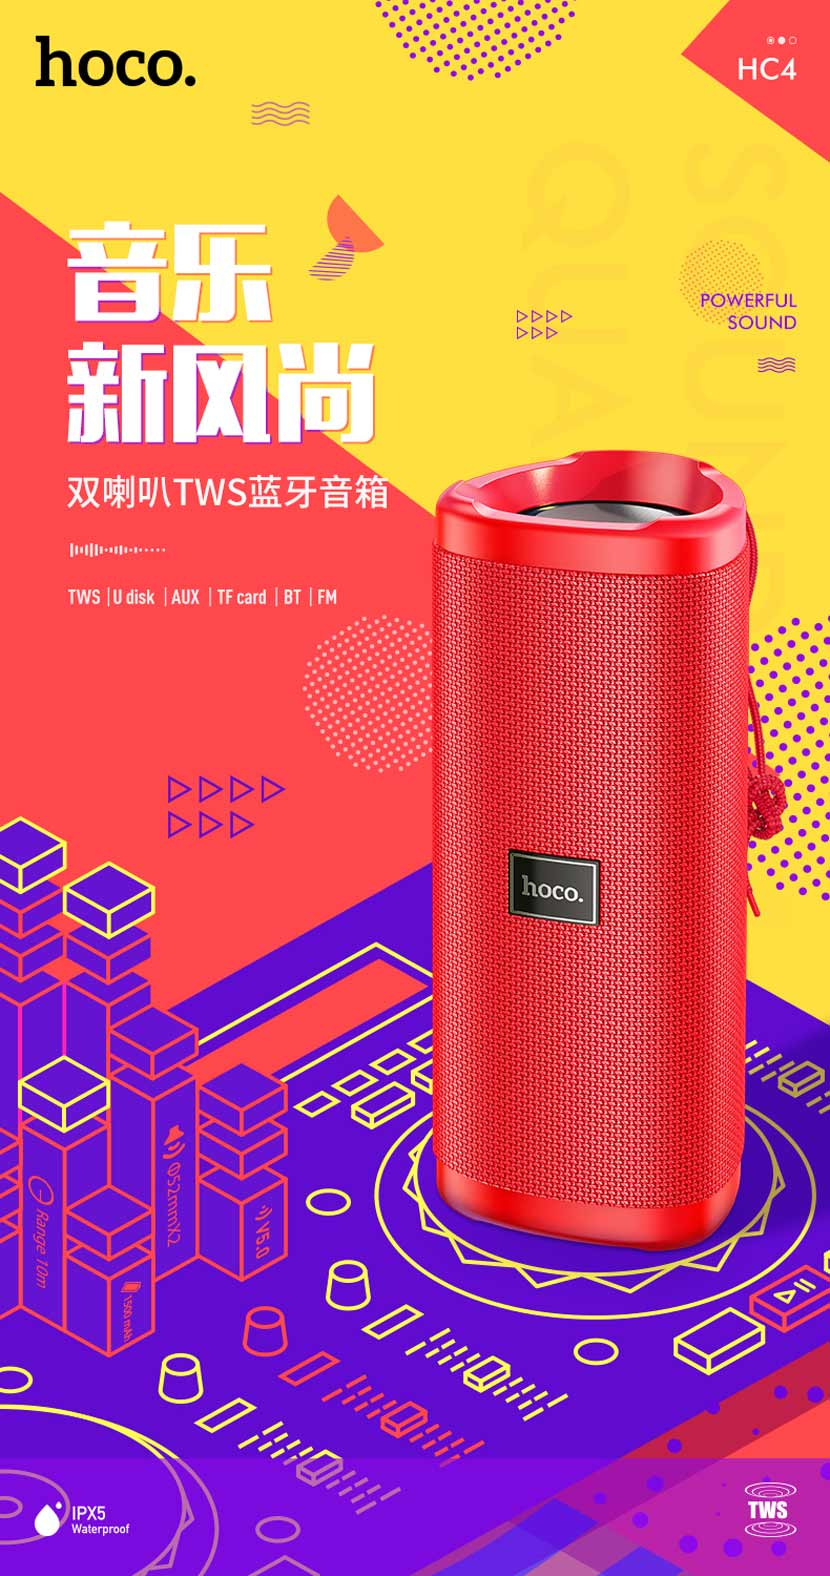 hoco news hc4 bella sports bt speaker cn